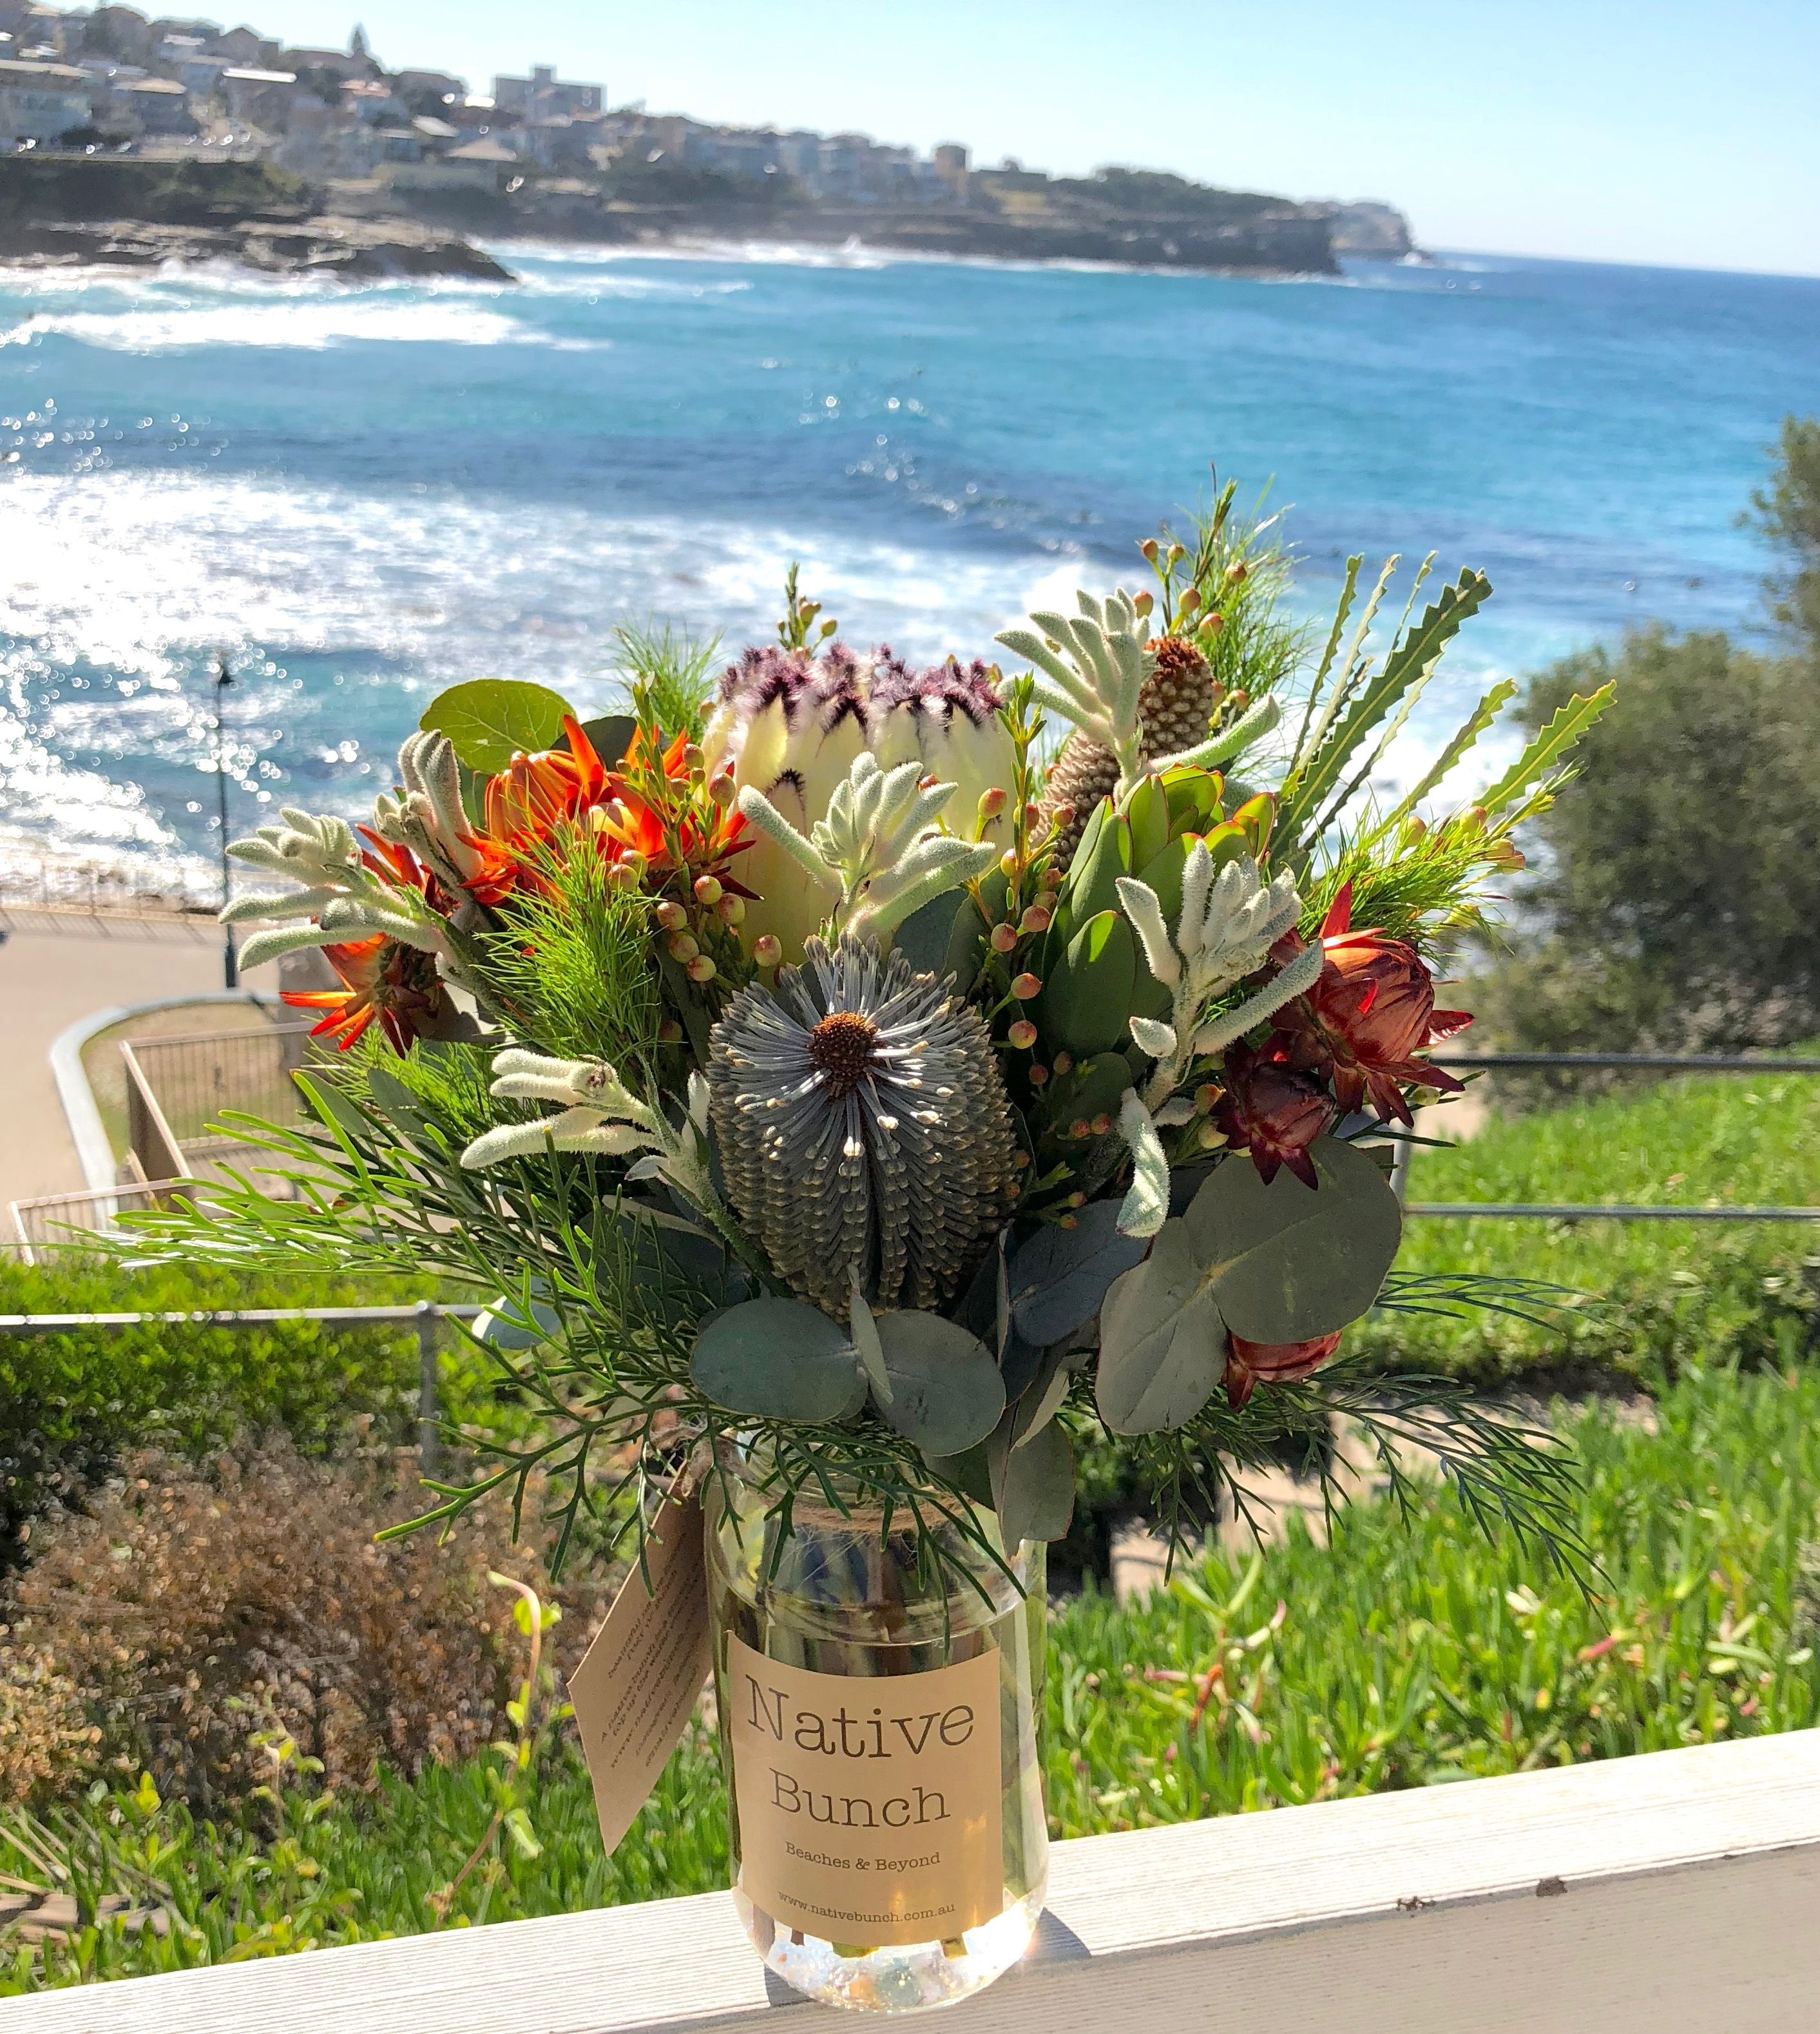 Our native flower posy taking in the view at Bronte Beach